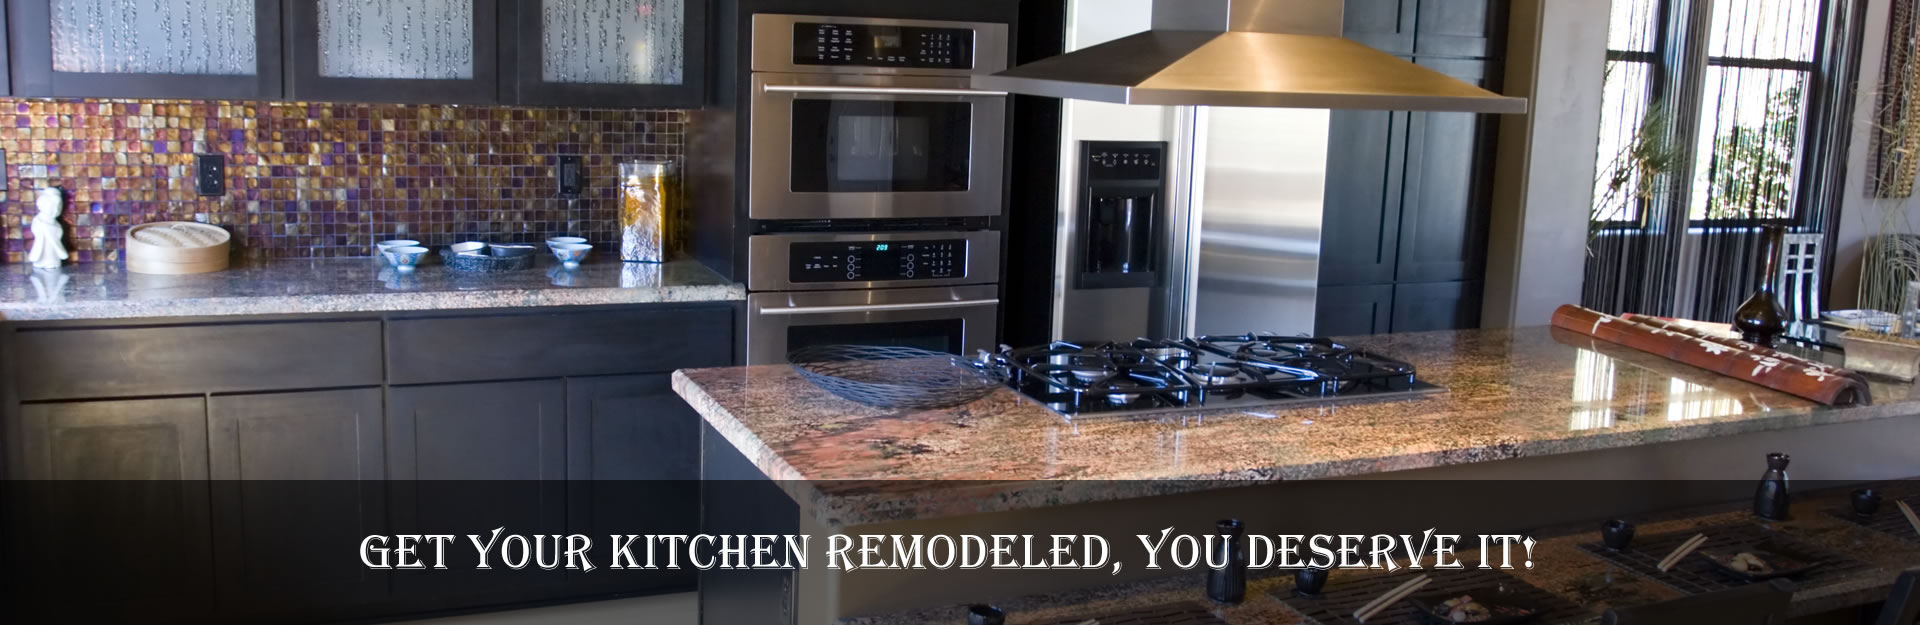 Kitchen Cabinet Bath Remodels Hd Kitchens Bath Melbourne Fl